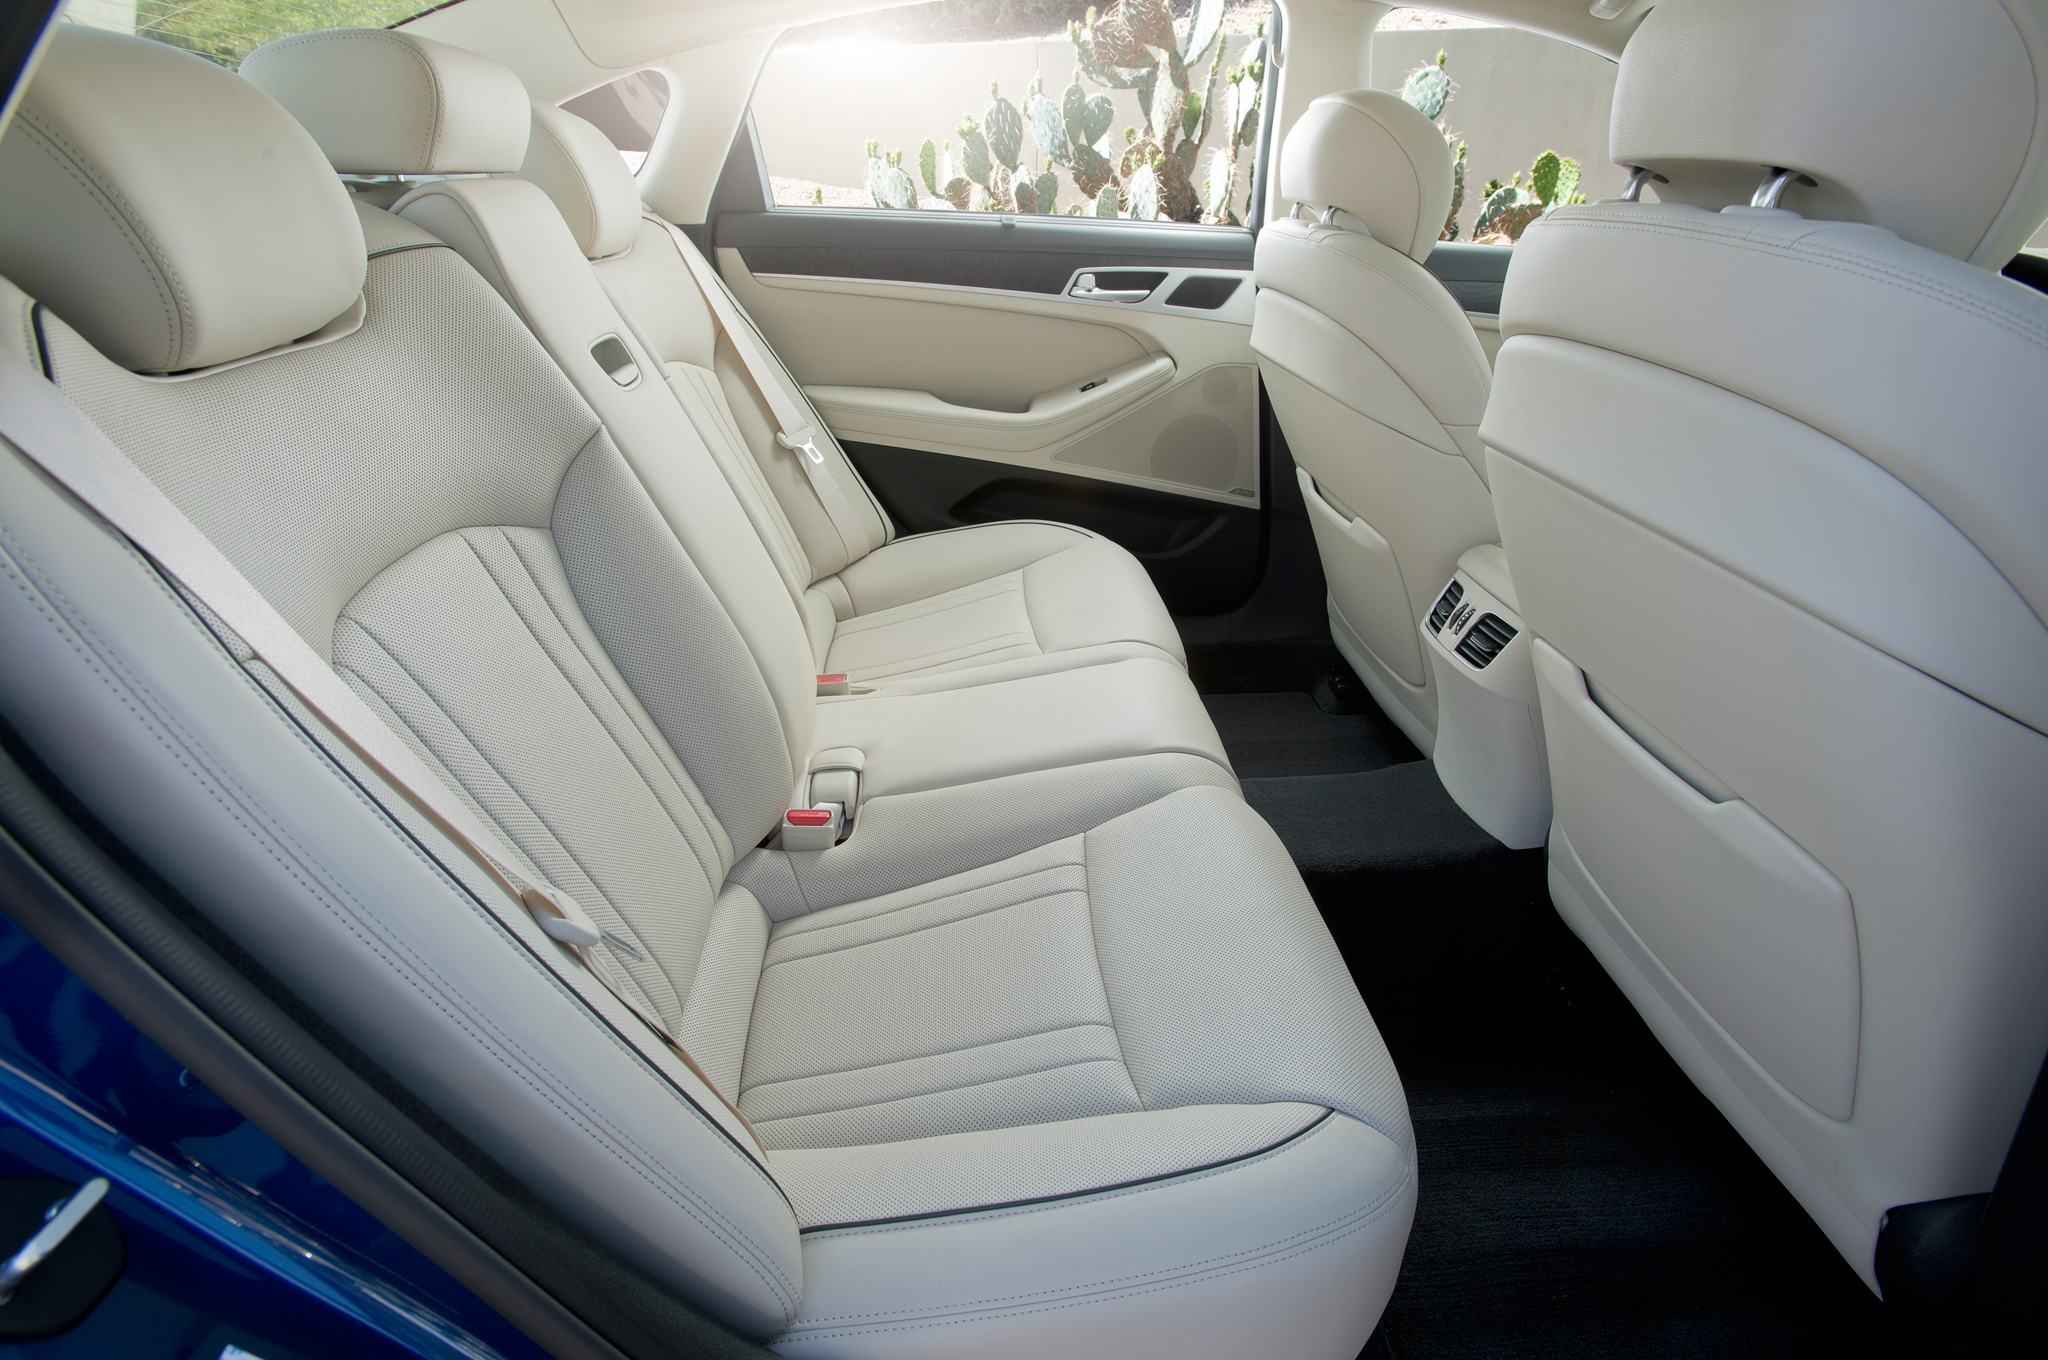 2015 Hyundai Genesis Rear Seat Interior (View 9 of 11)